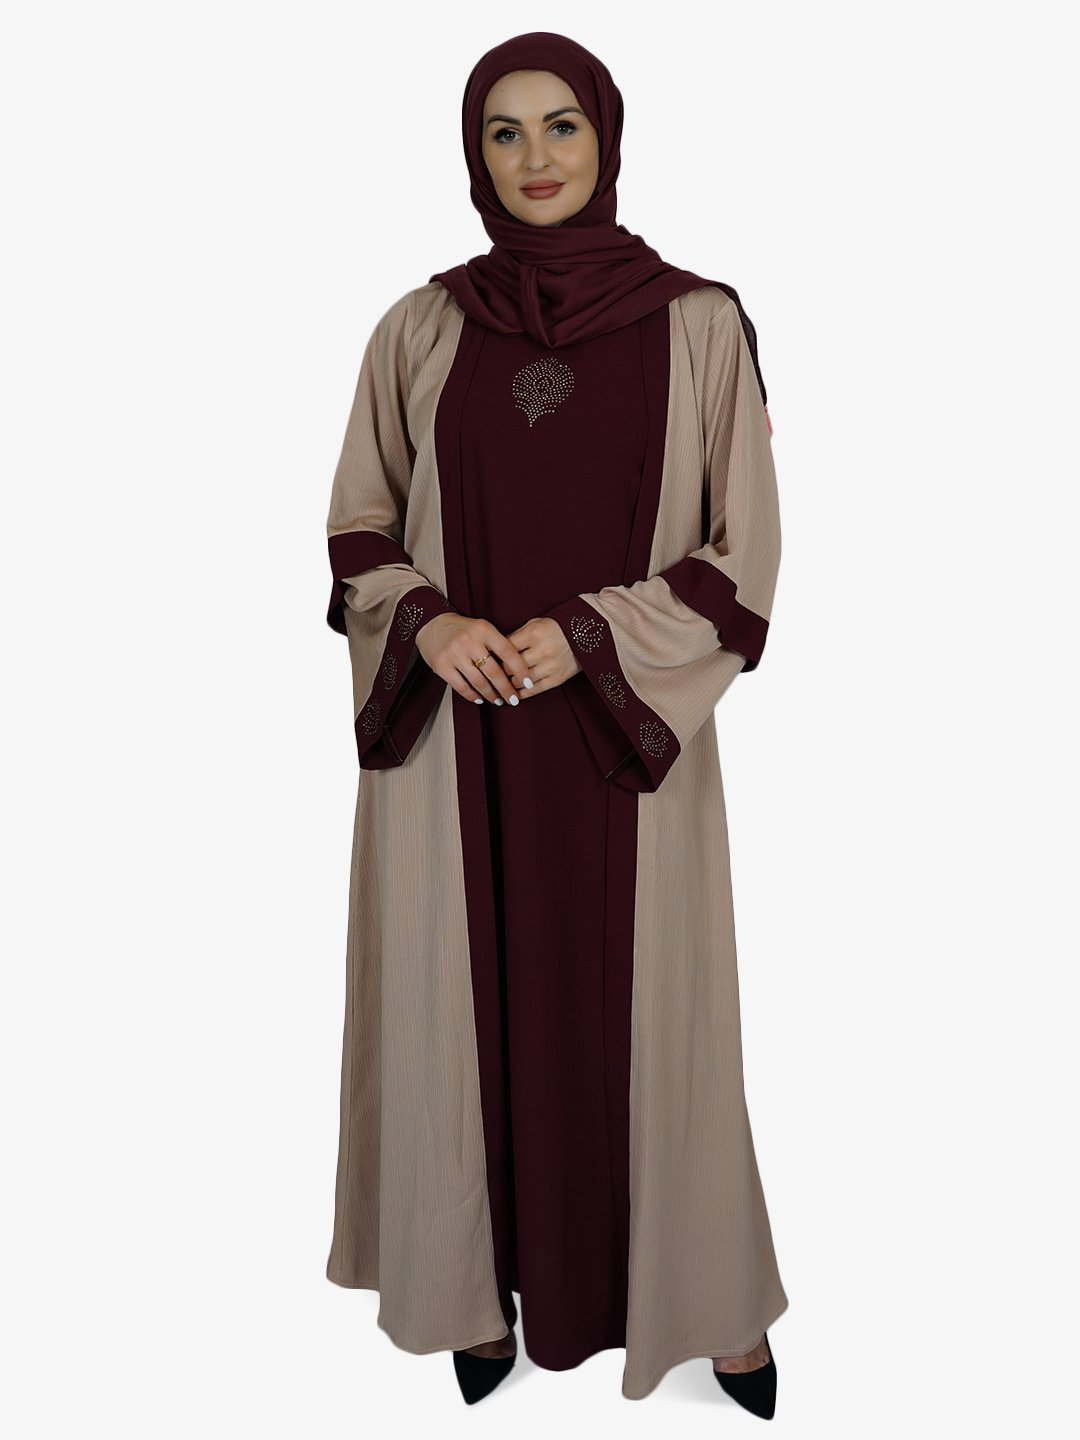 Masha Crepe Free Size Abaya With Zoom Attached Shrug In Maroon And Beige